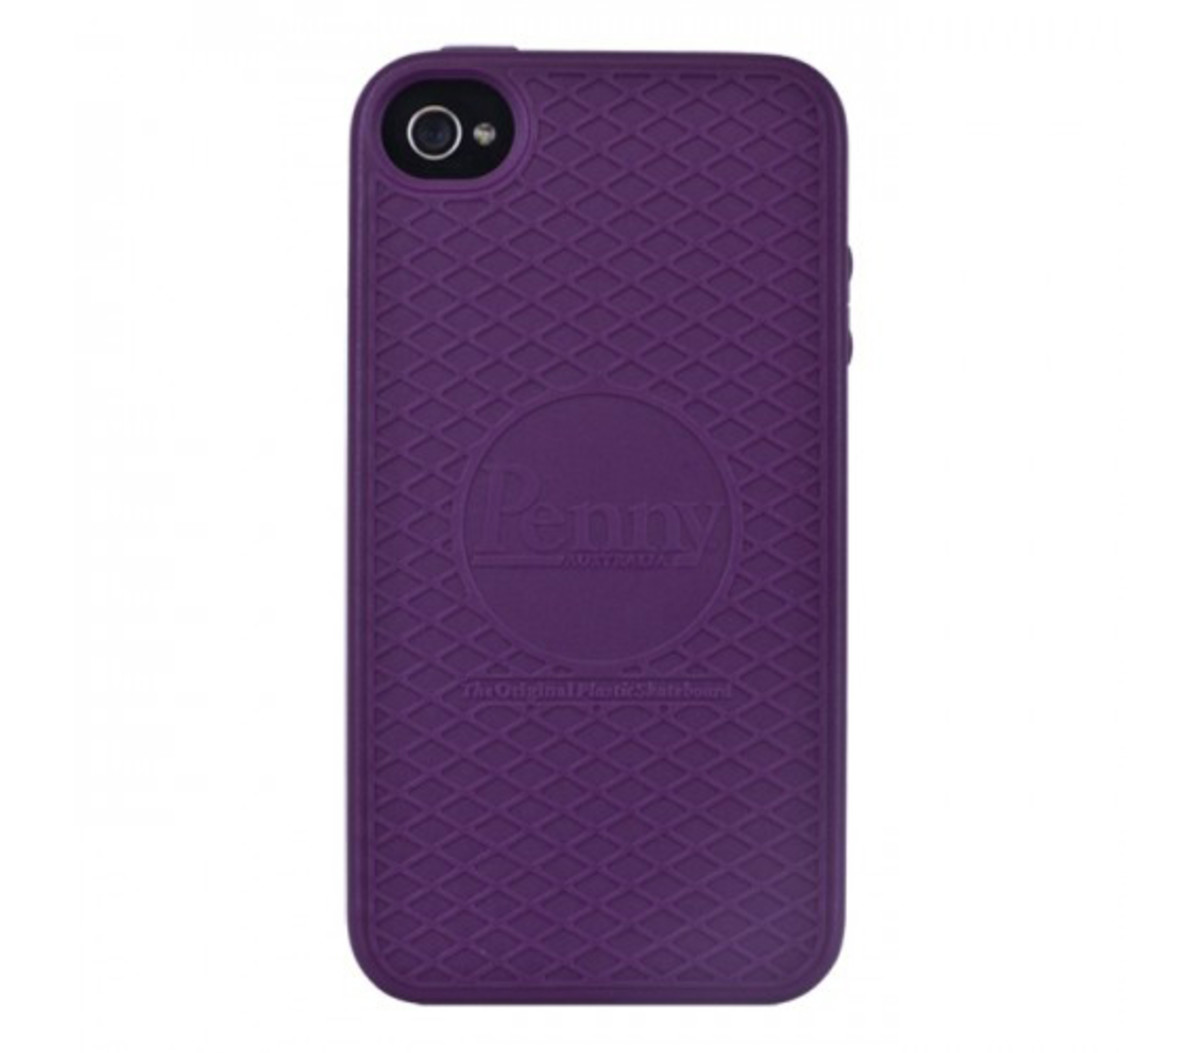 penny-skateboards-iphone-cover-09